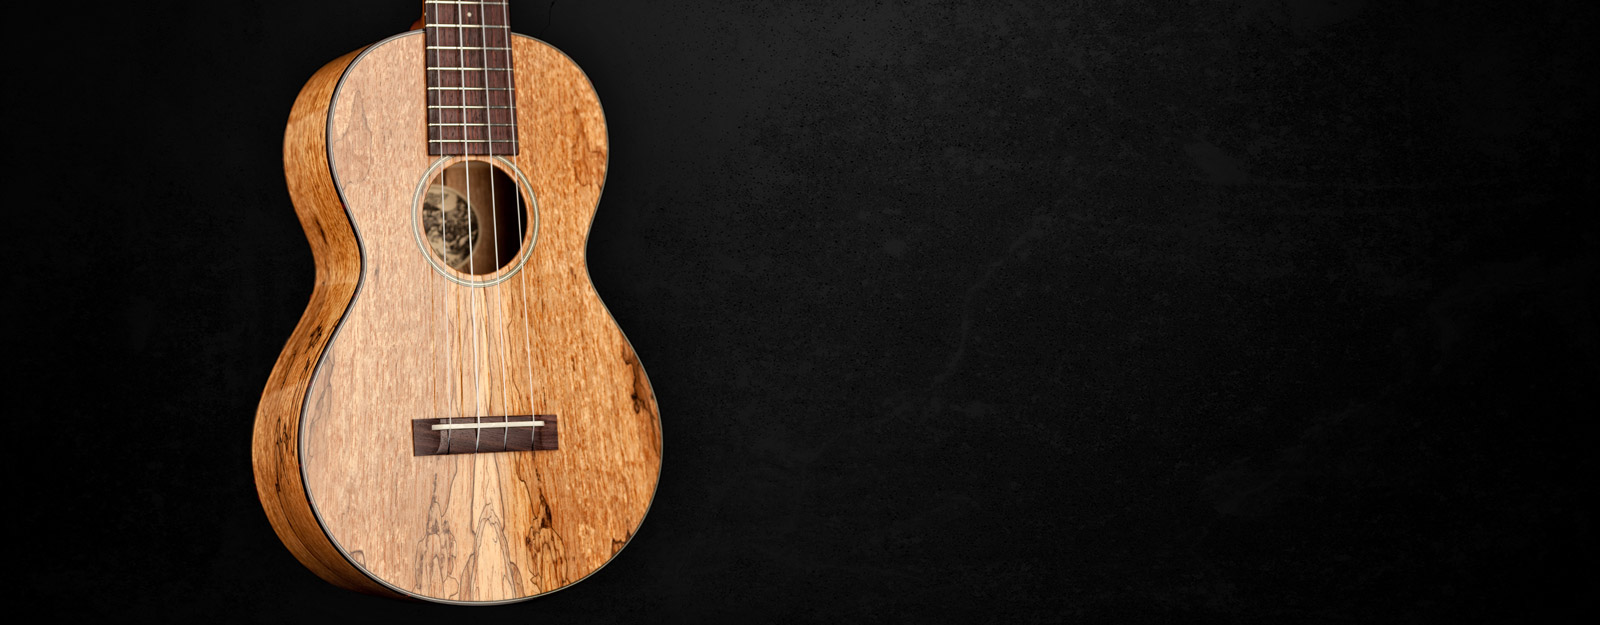 uc2-spalted-pecan